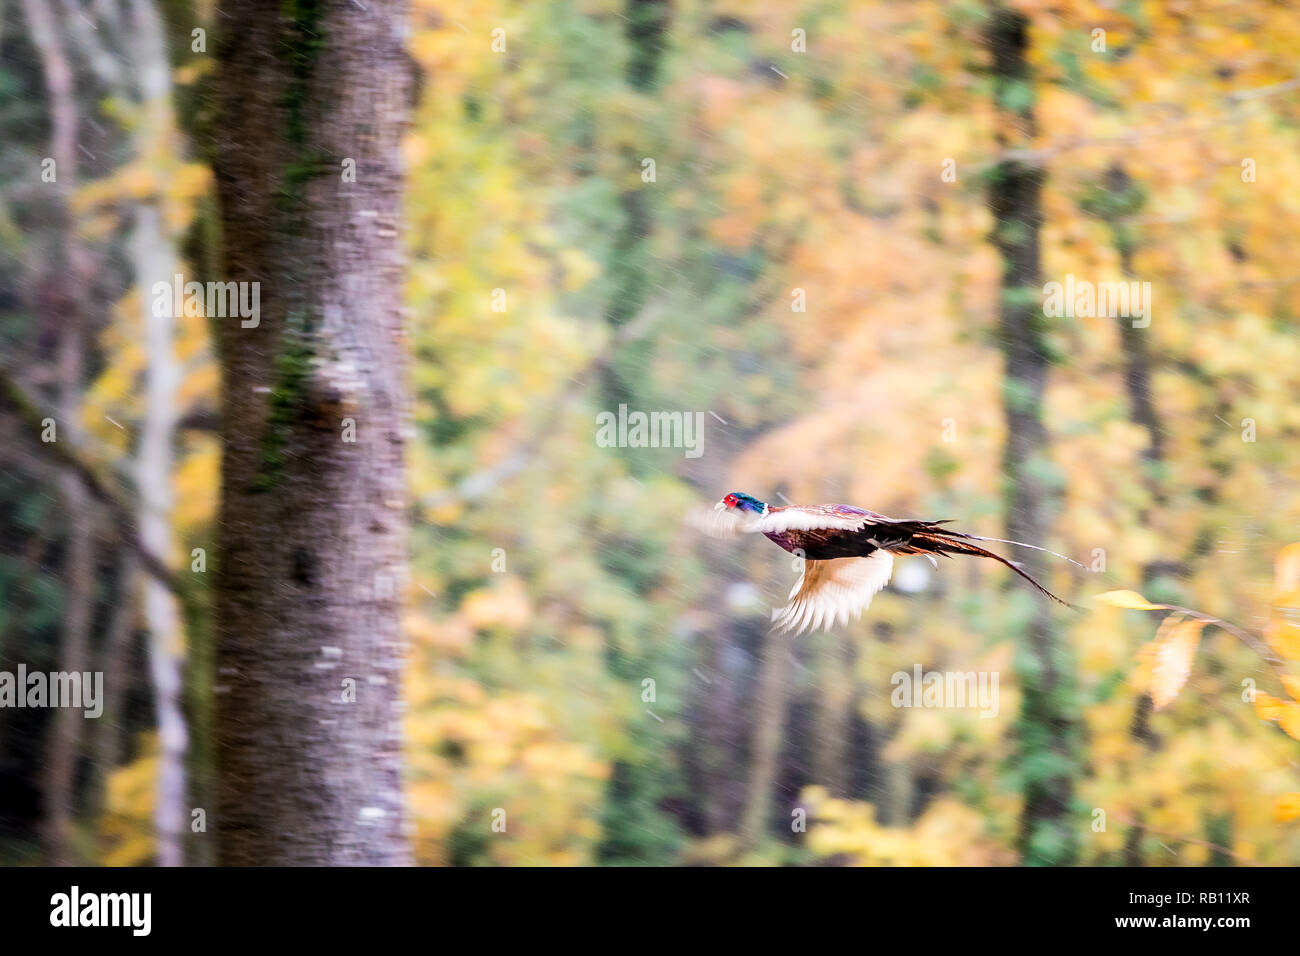 Pheasant flight in the autumn woods - Stock Image